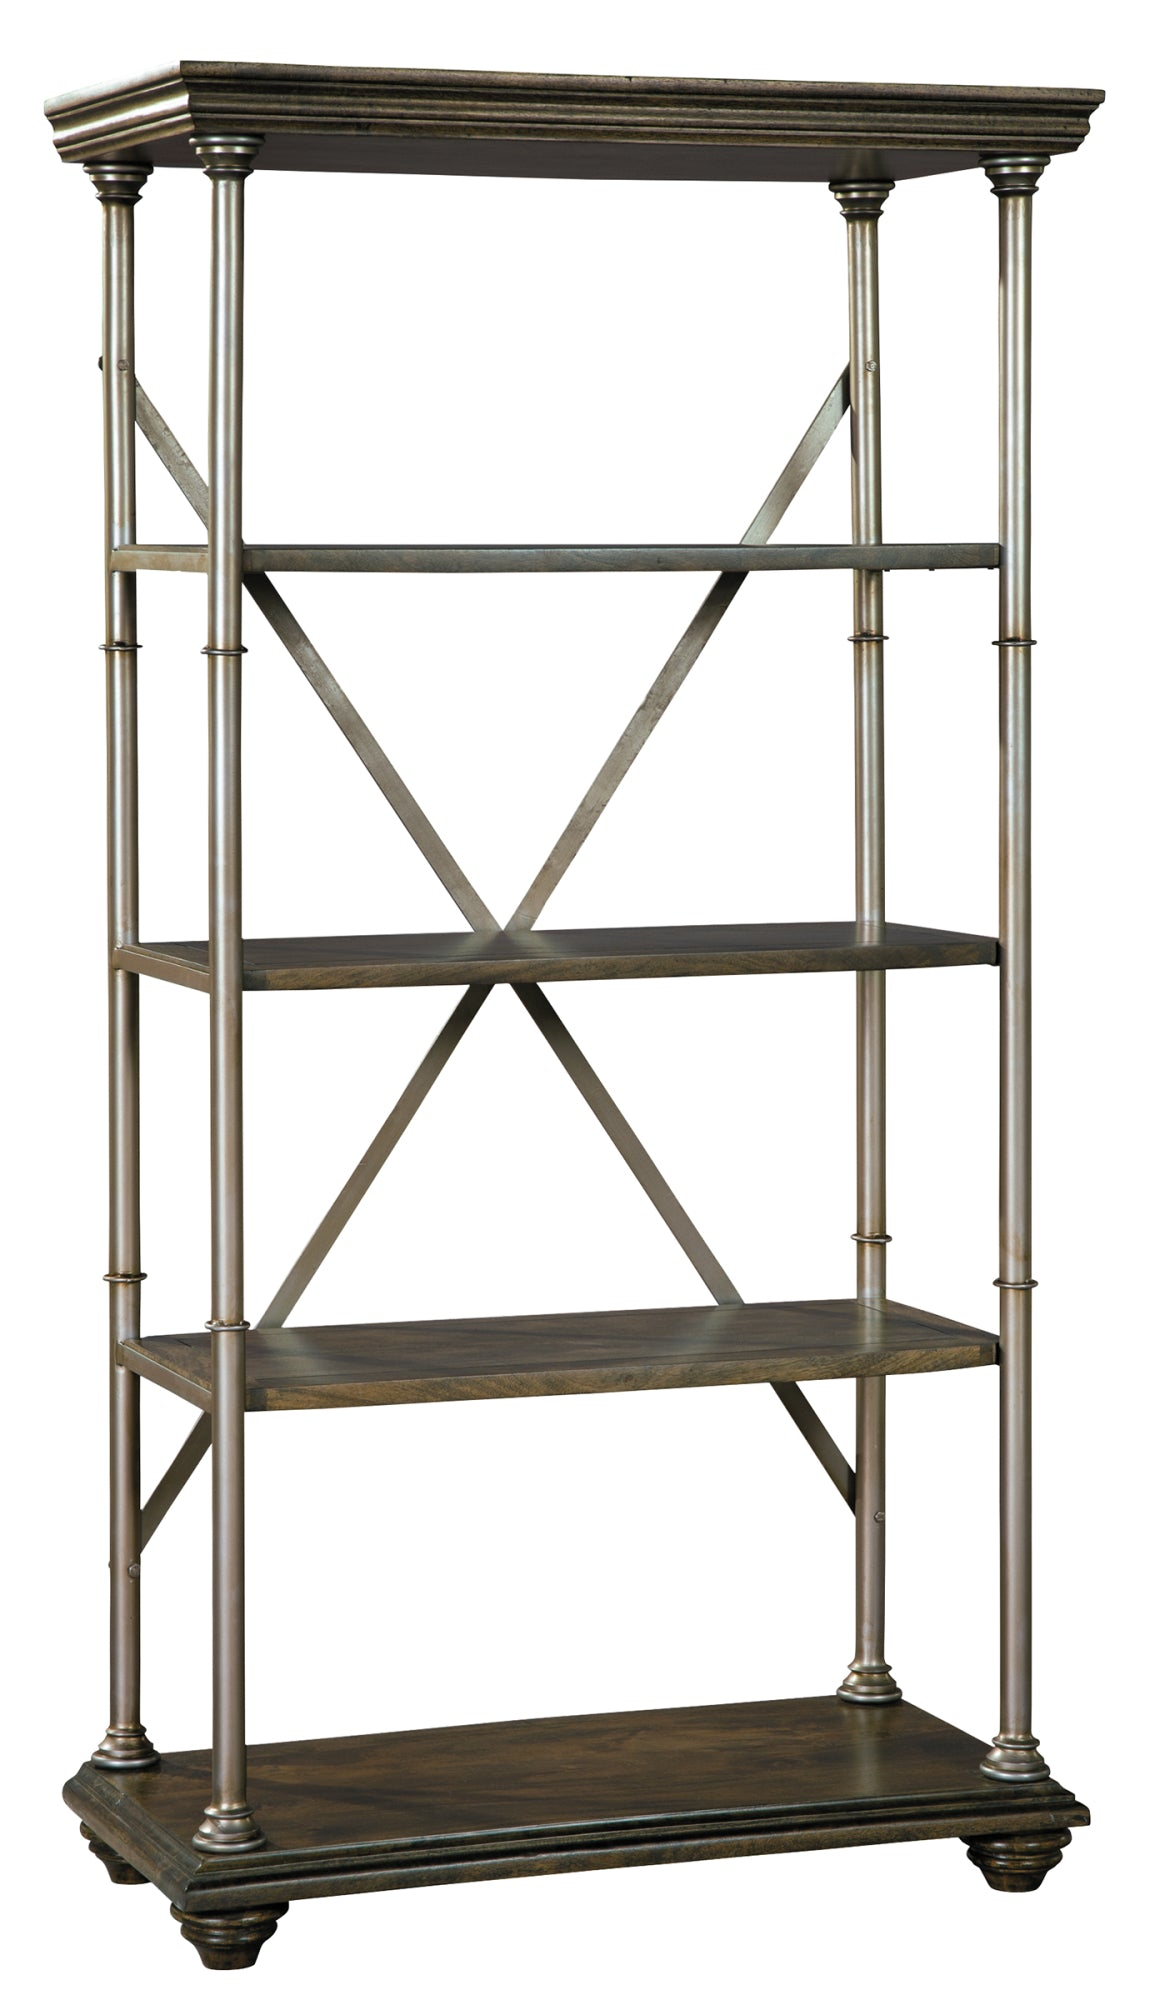 Hekman Office At Home Cambridge Etagere 27861 - Curios And More